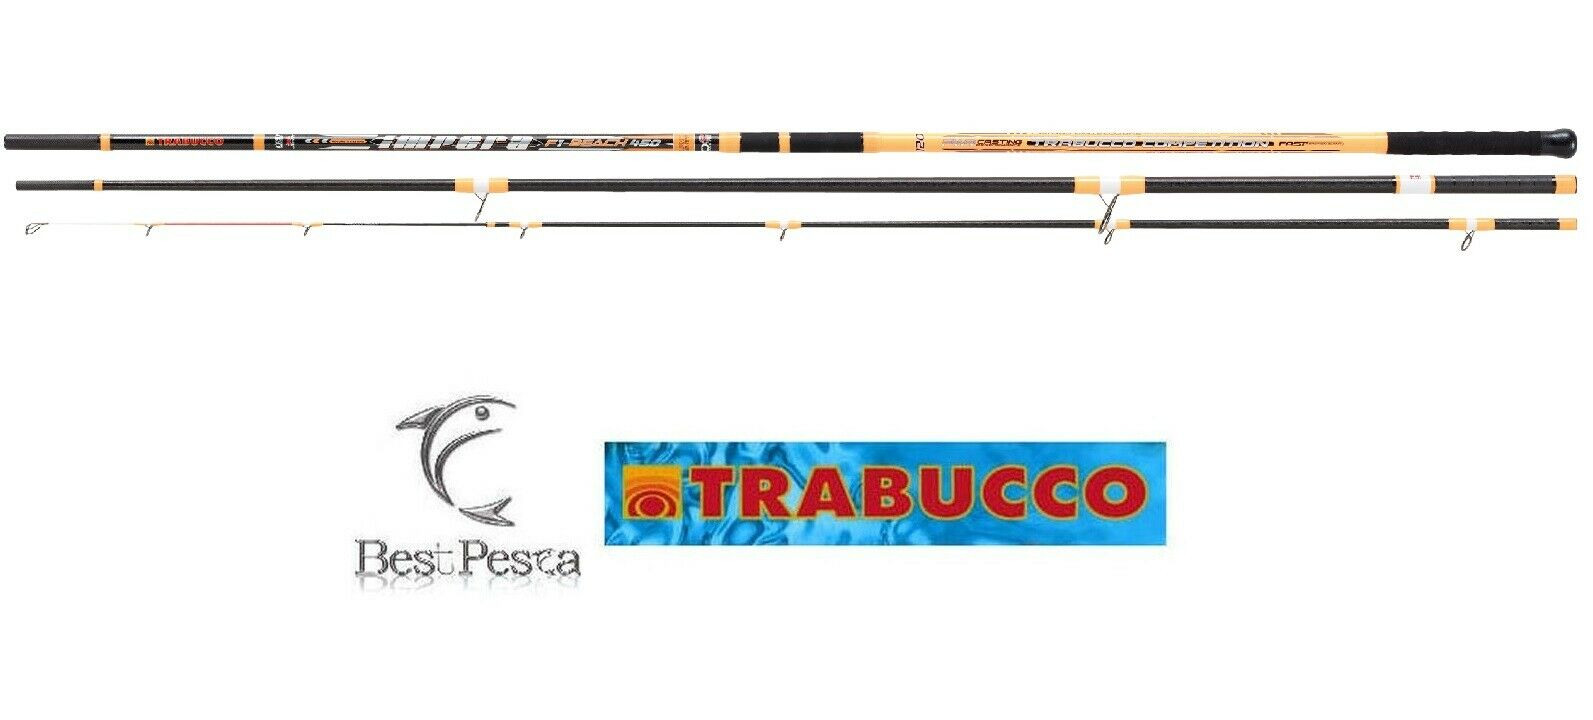 Trabucco-conquer routine f-1  Beach 4.8mt - 120gr-Code 171-92-480  for wholesale